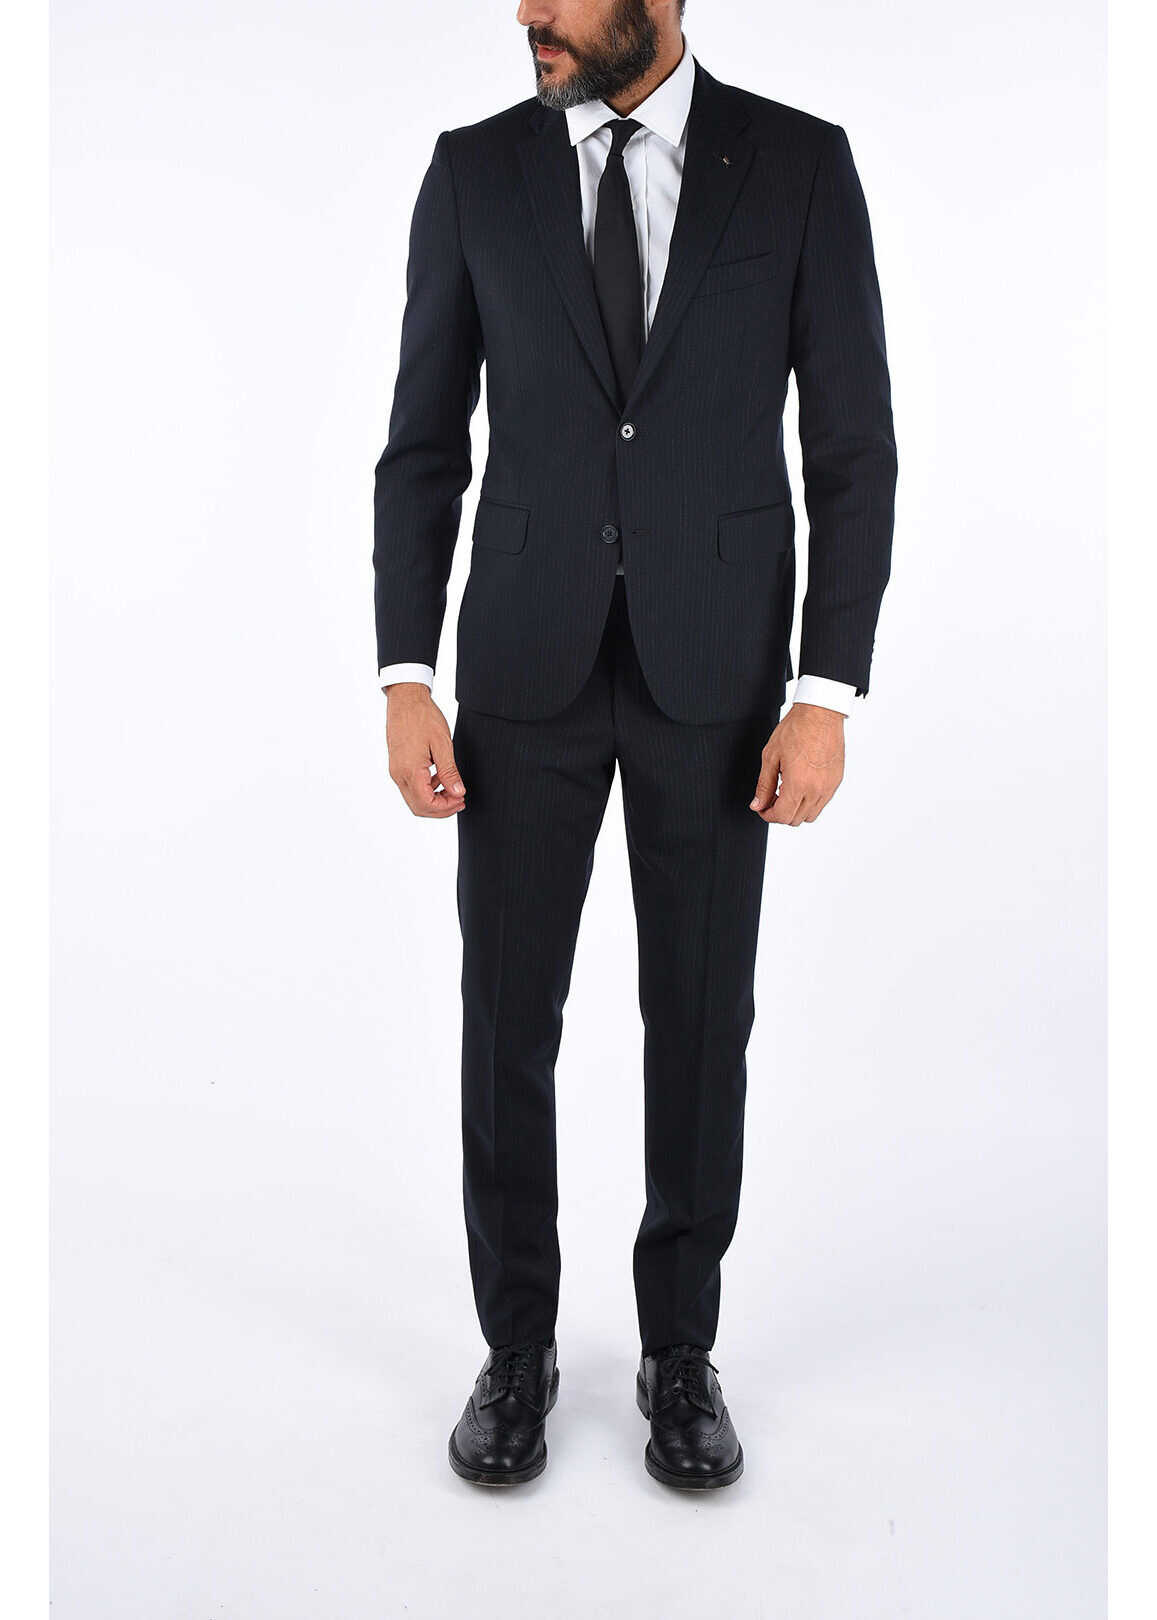 CORNELIANI CC COLLECTION Pinstriped RIGHT Suit MIDNIGHT BLUE